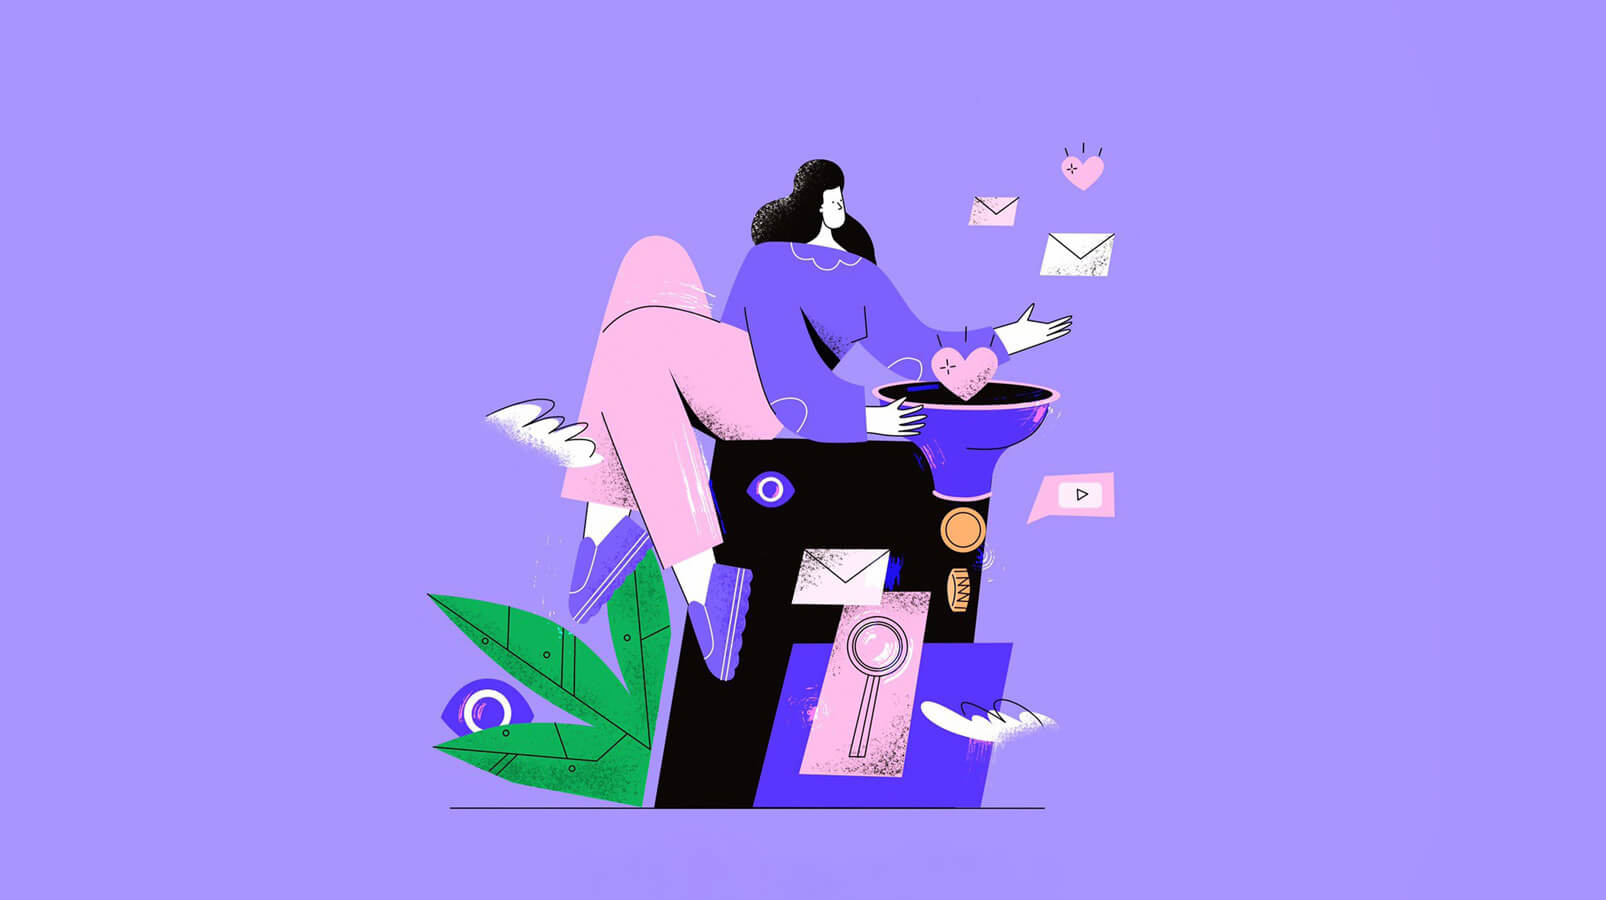 woman with purple sweater holding a marketing funnel illustration